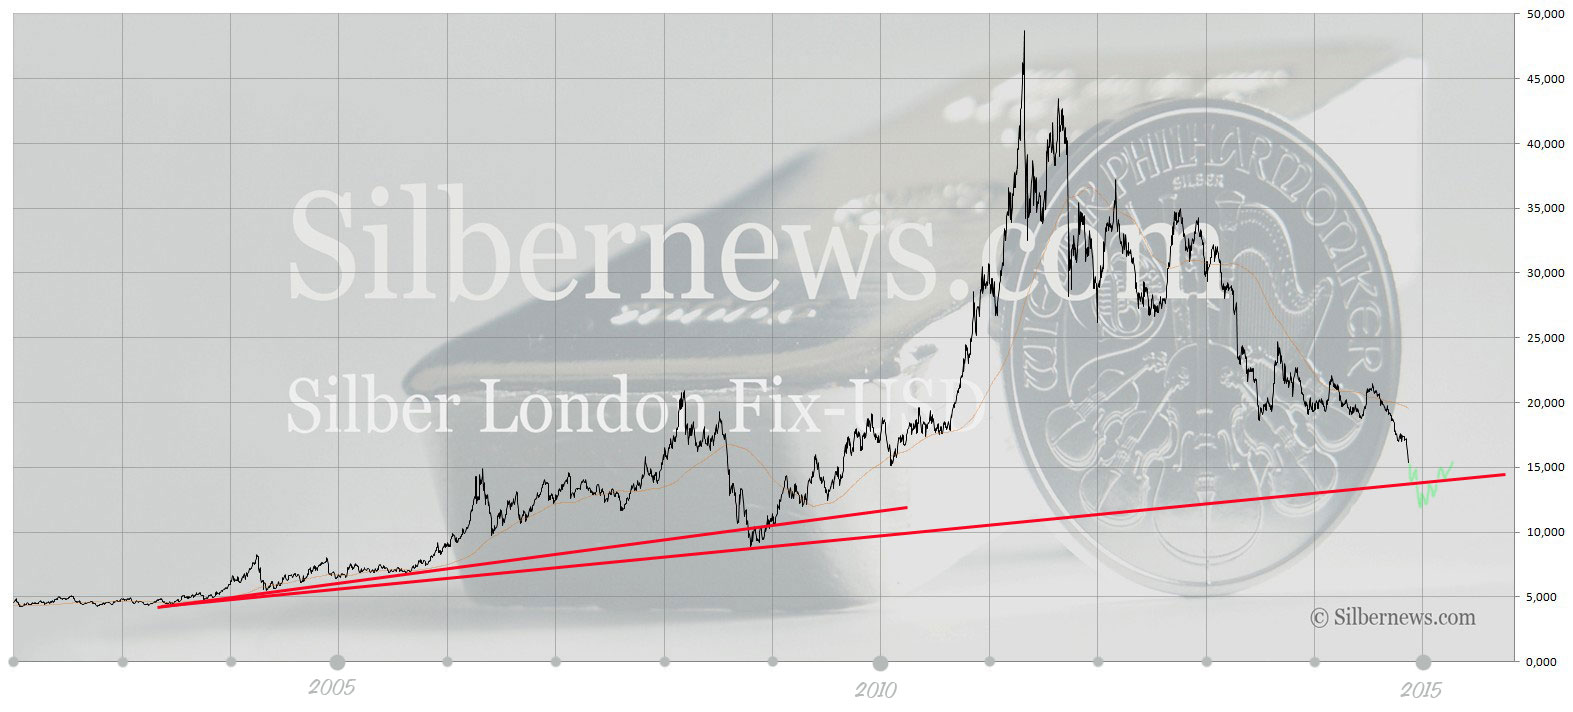 Silberchart in USD 2002 bis 2015